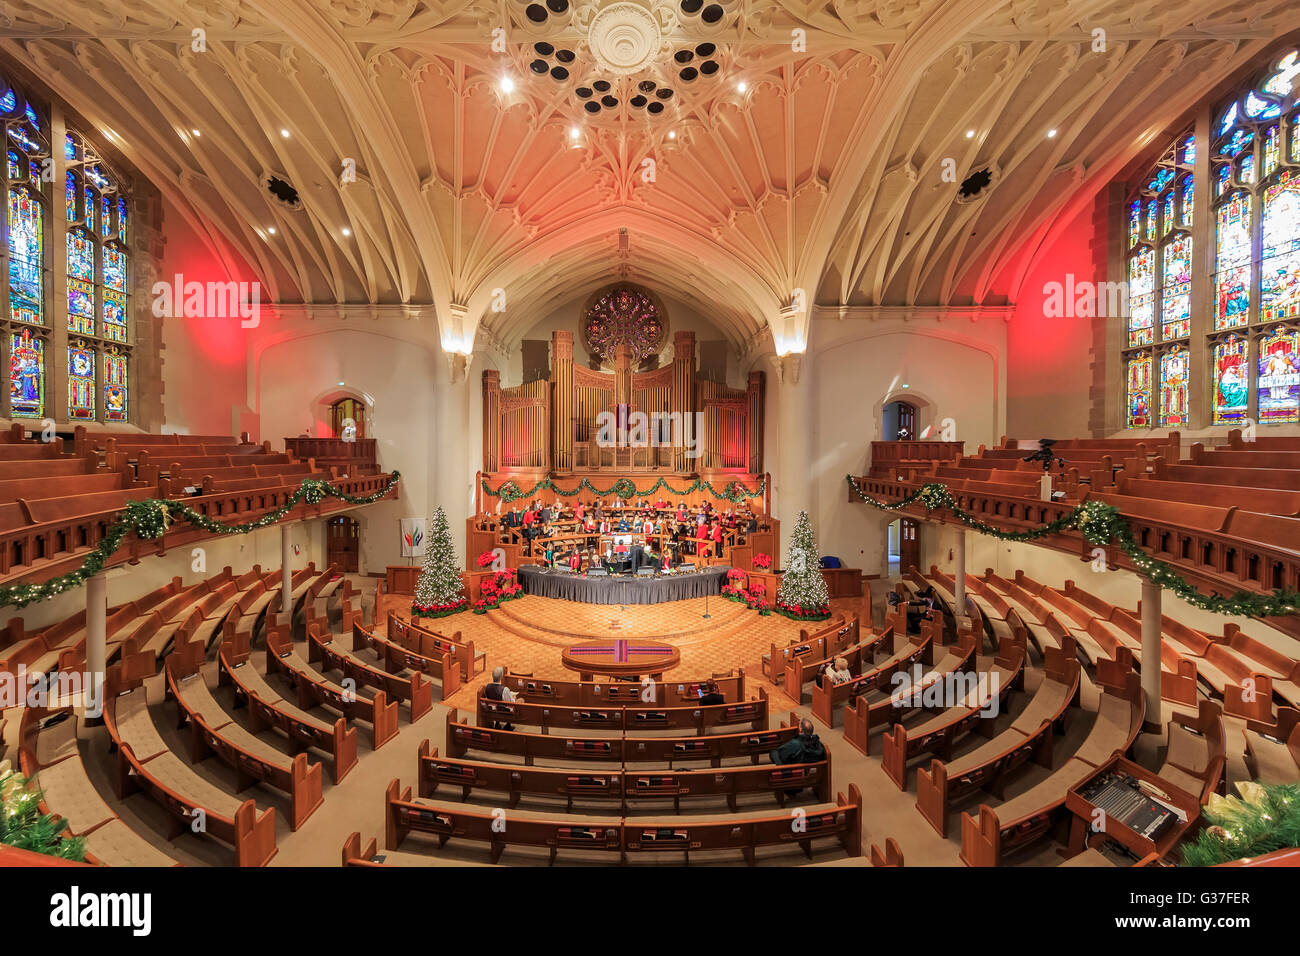 Dec 19, Pasadena: Christmas at the famous First United Methodist ...